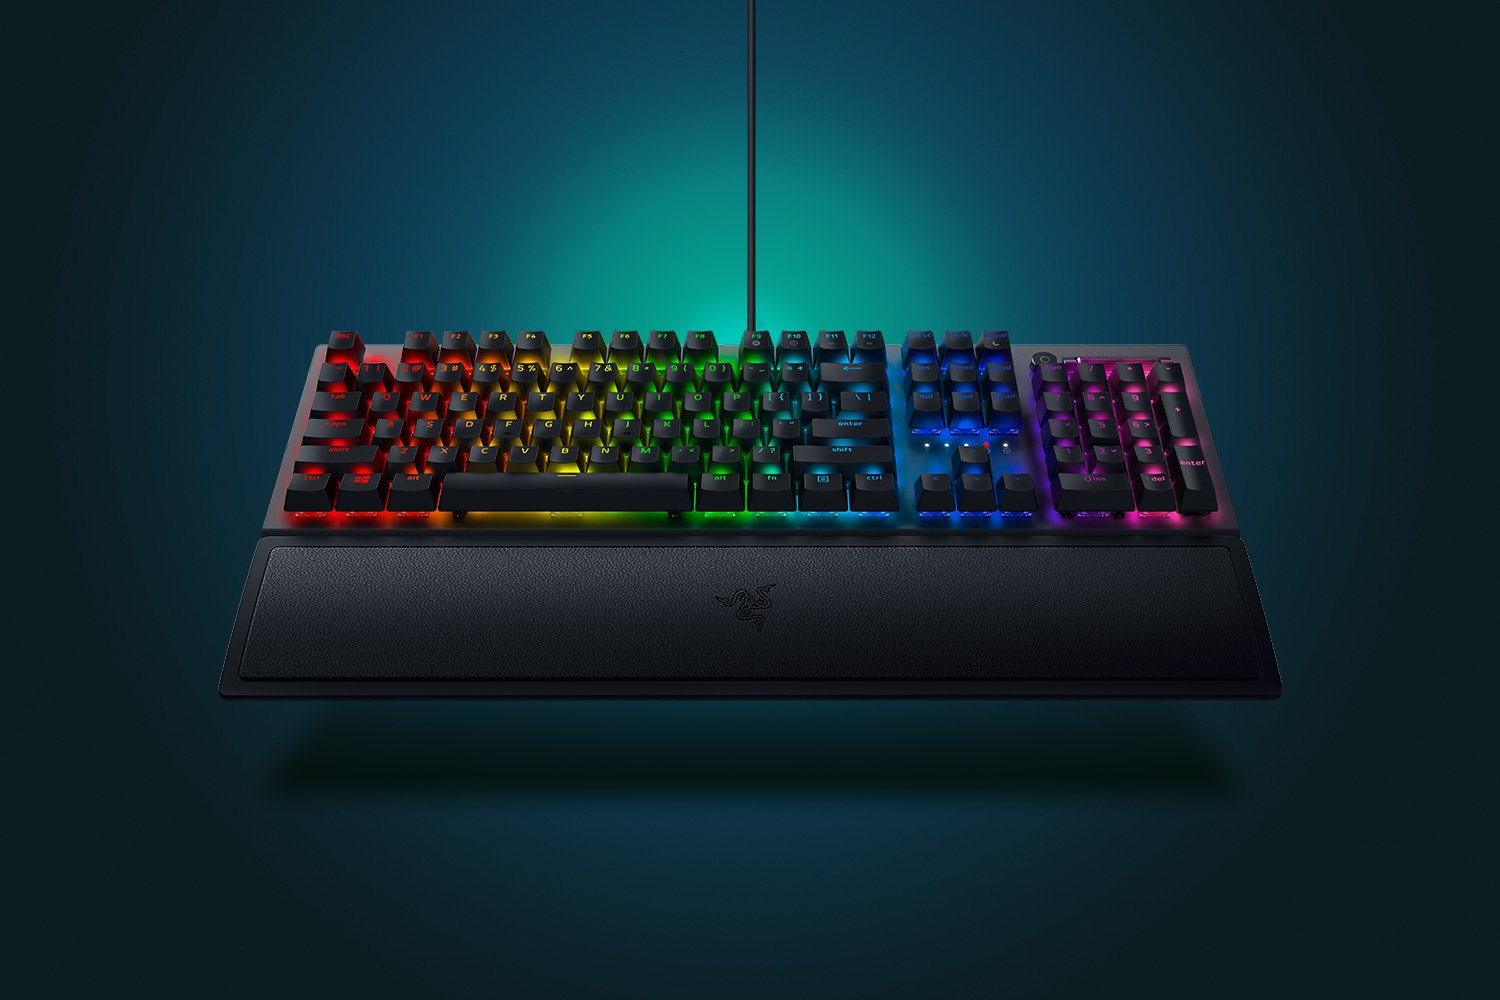 Razer BlackWidow V3 Review: The iconic gaming keyboard is back in a new garb